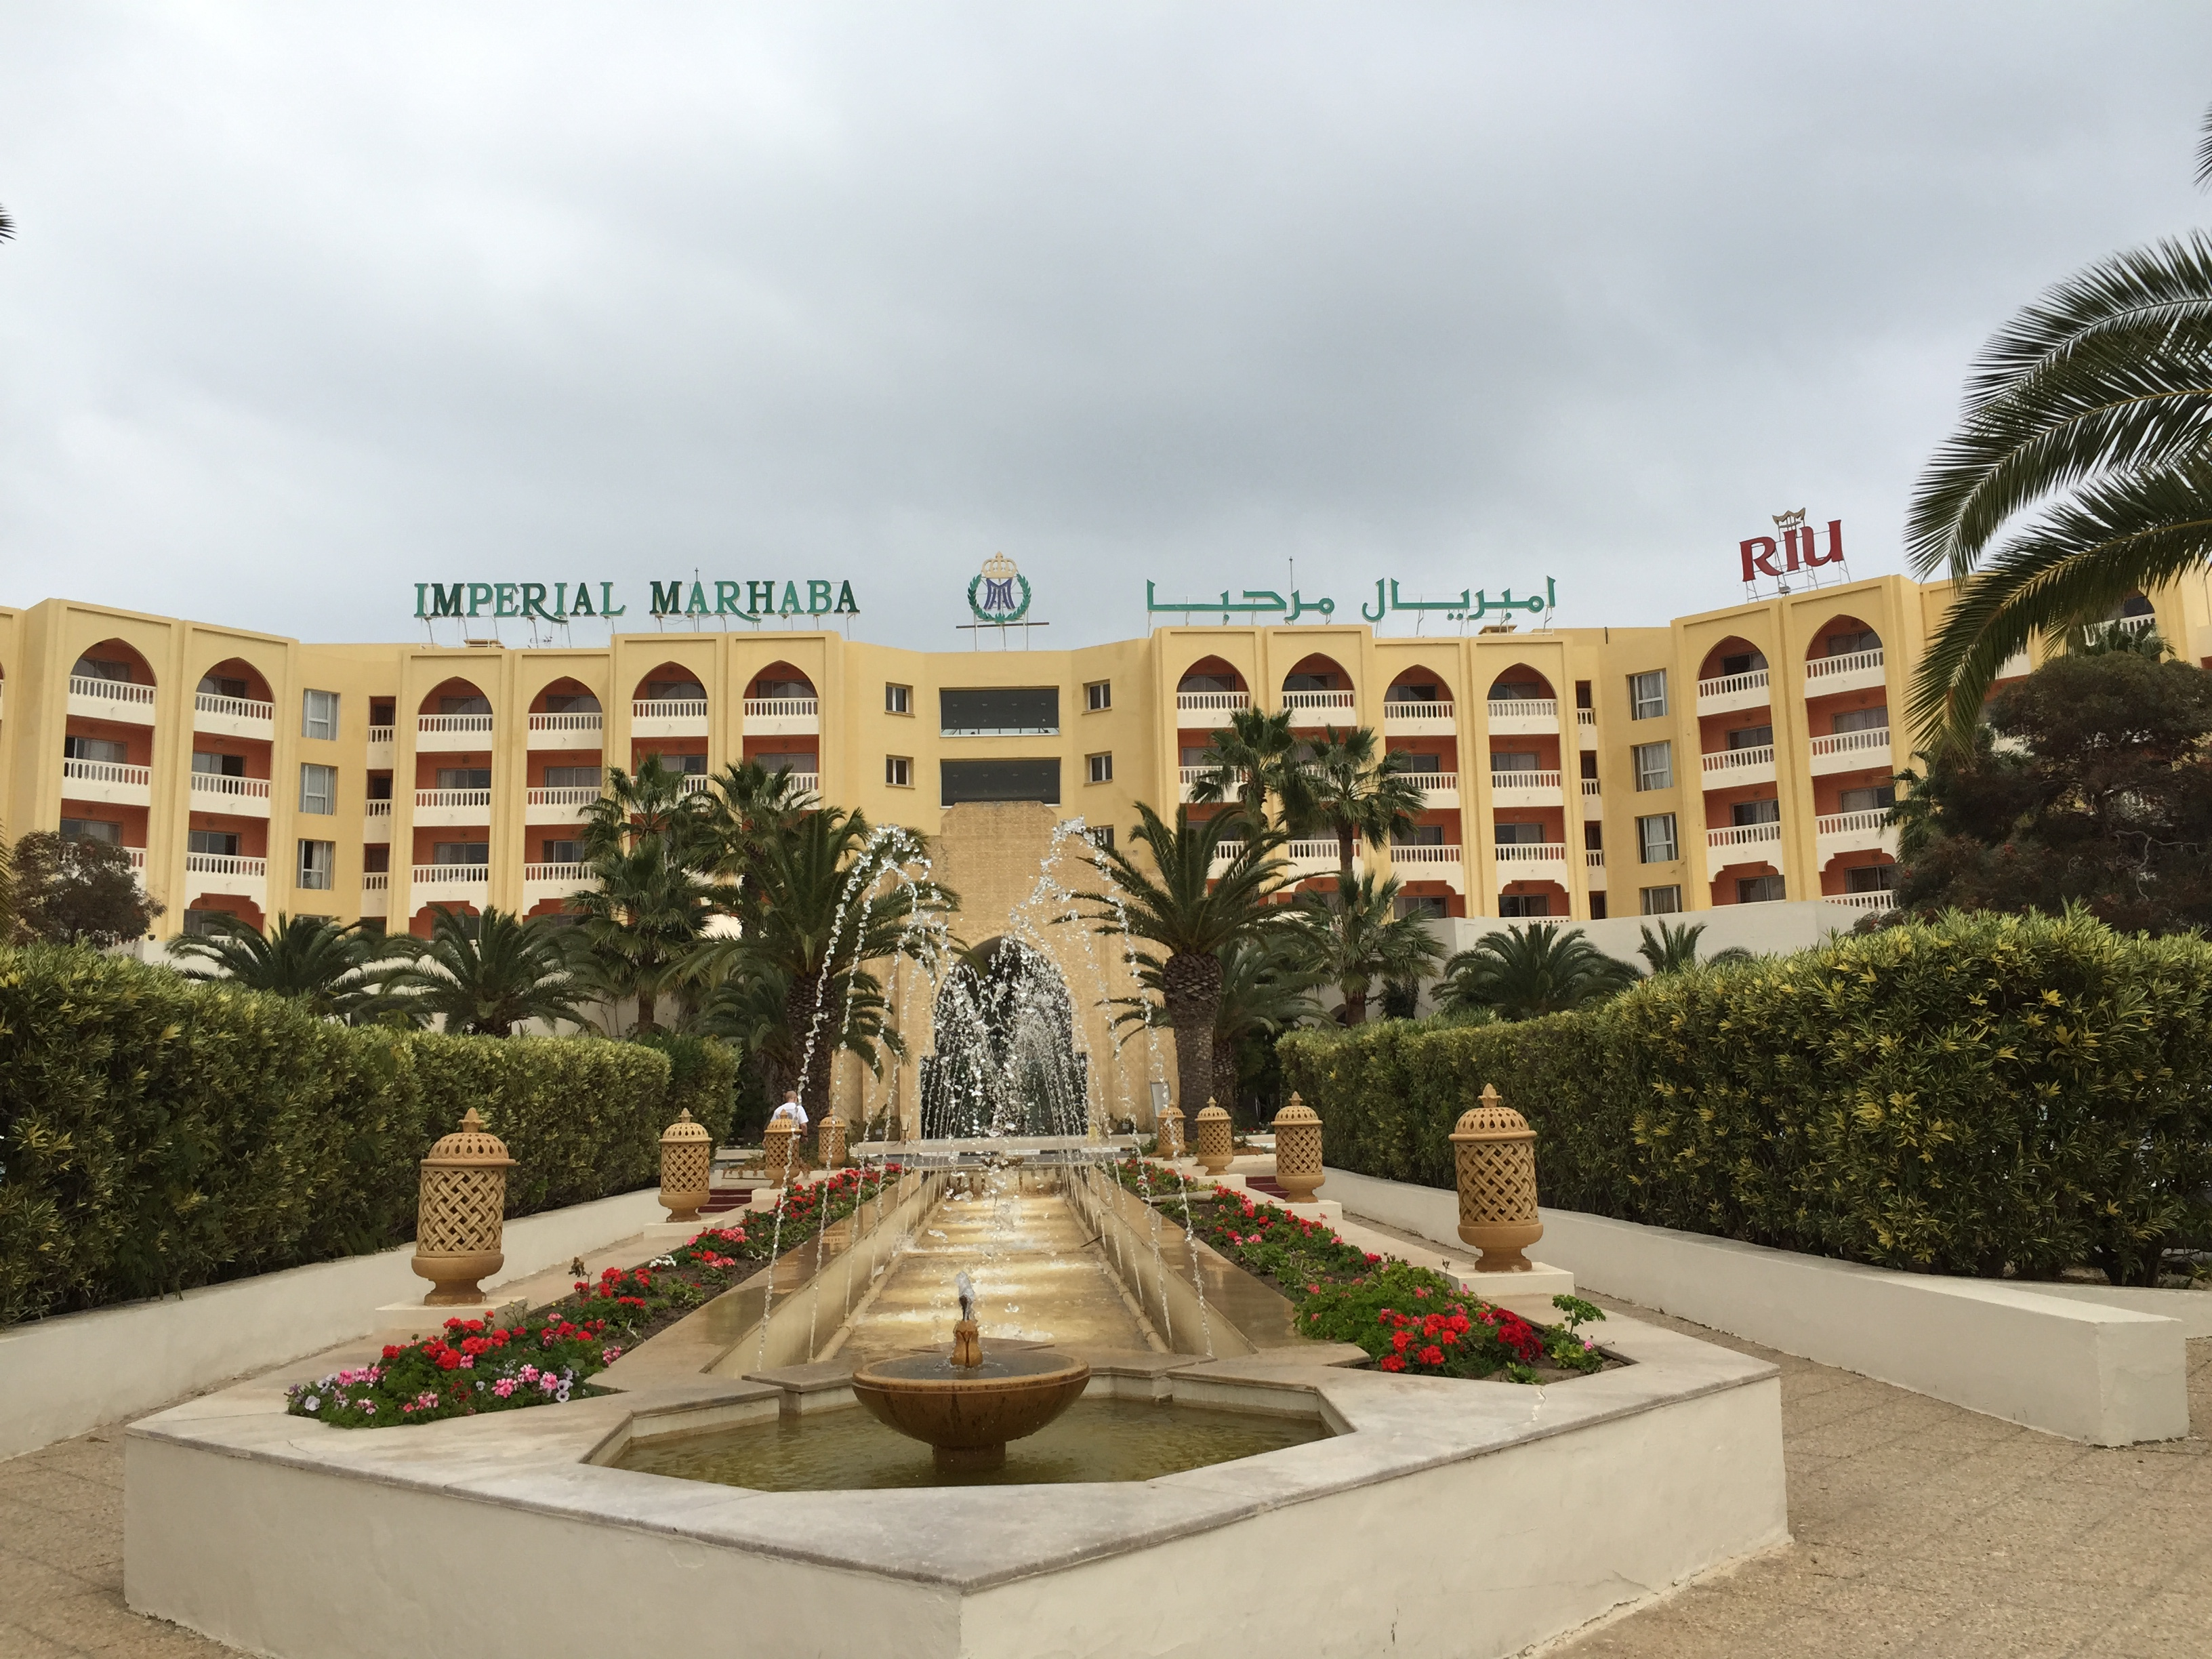 Spanish Chain Riu Hotels To Pull Out Of Tunisia